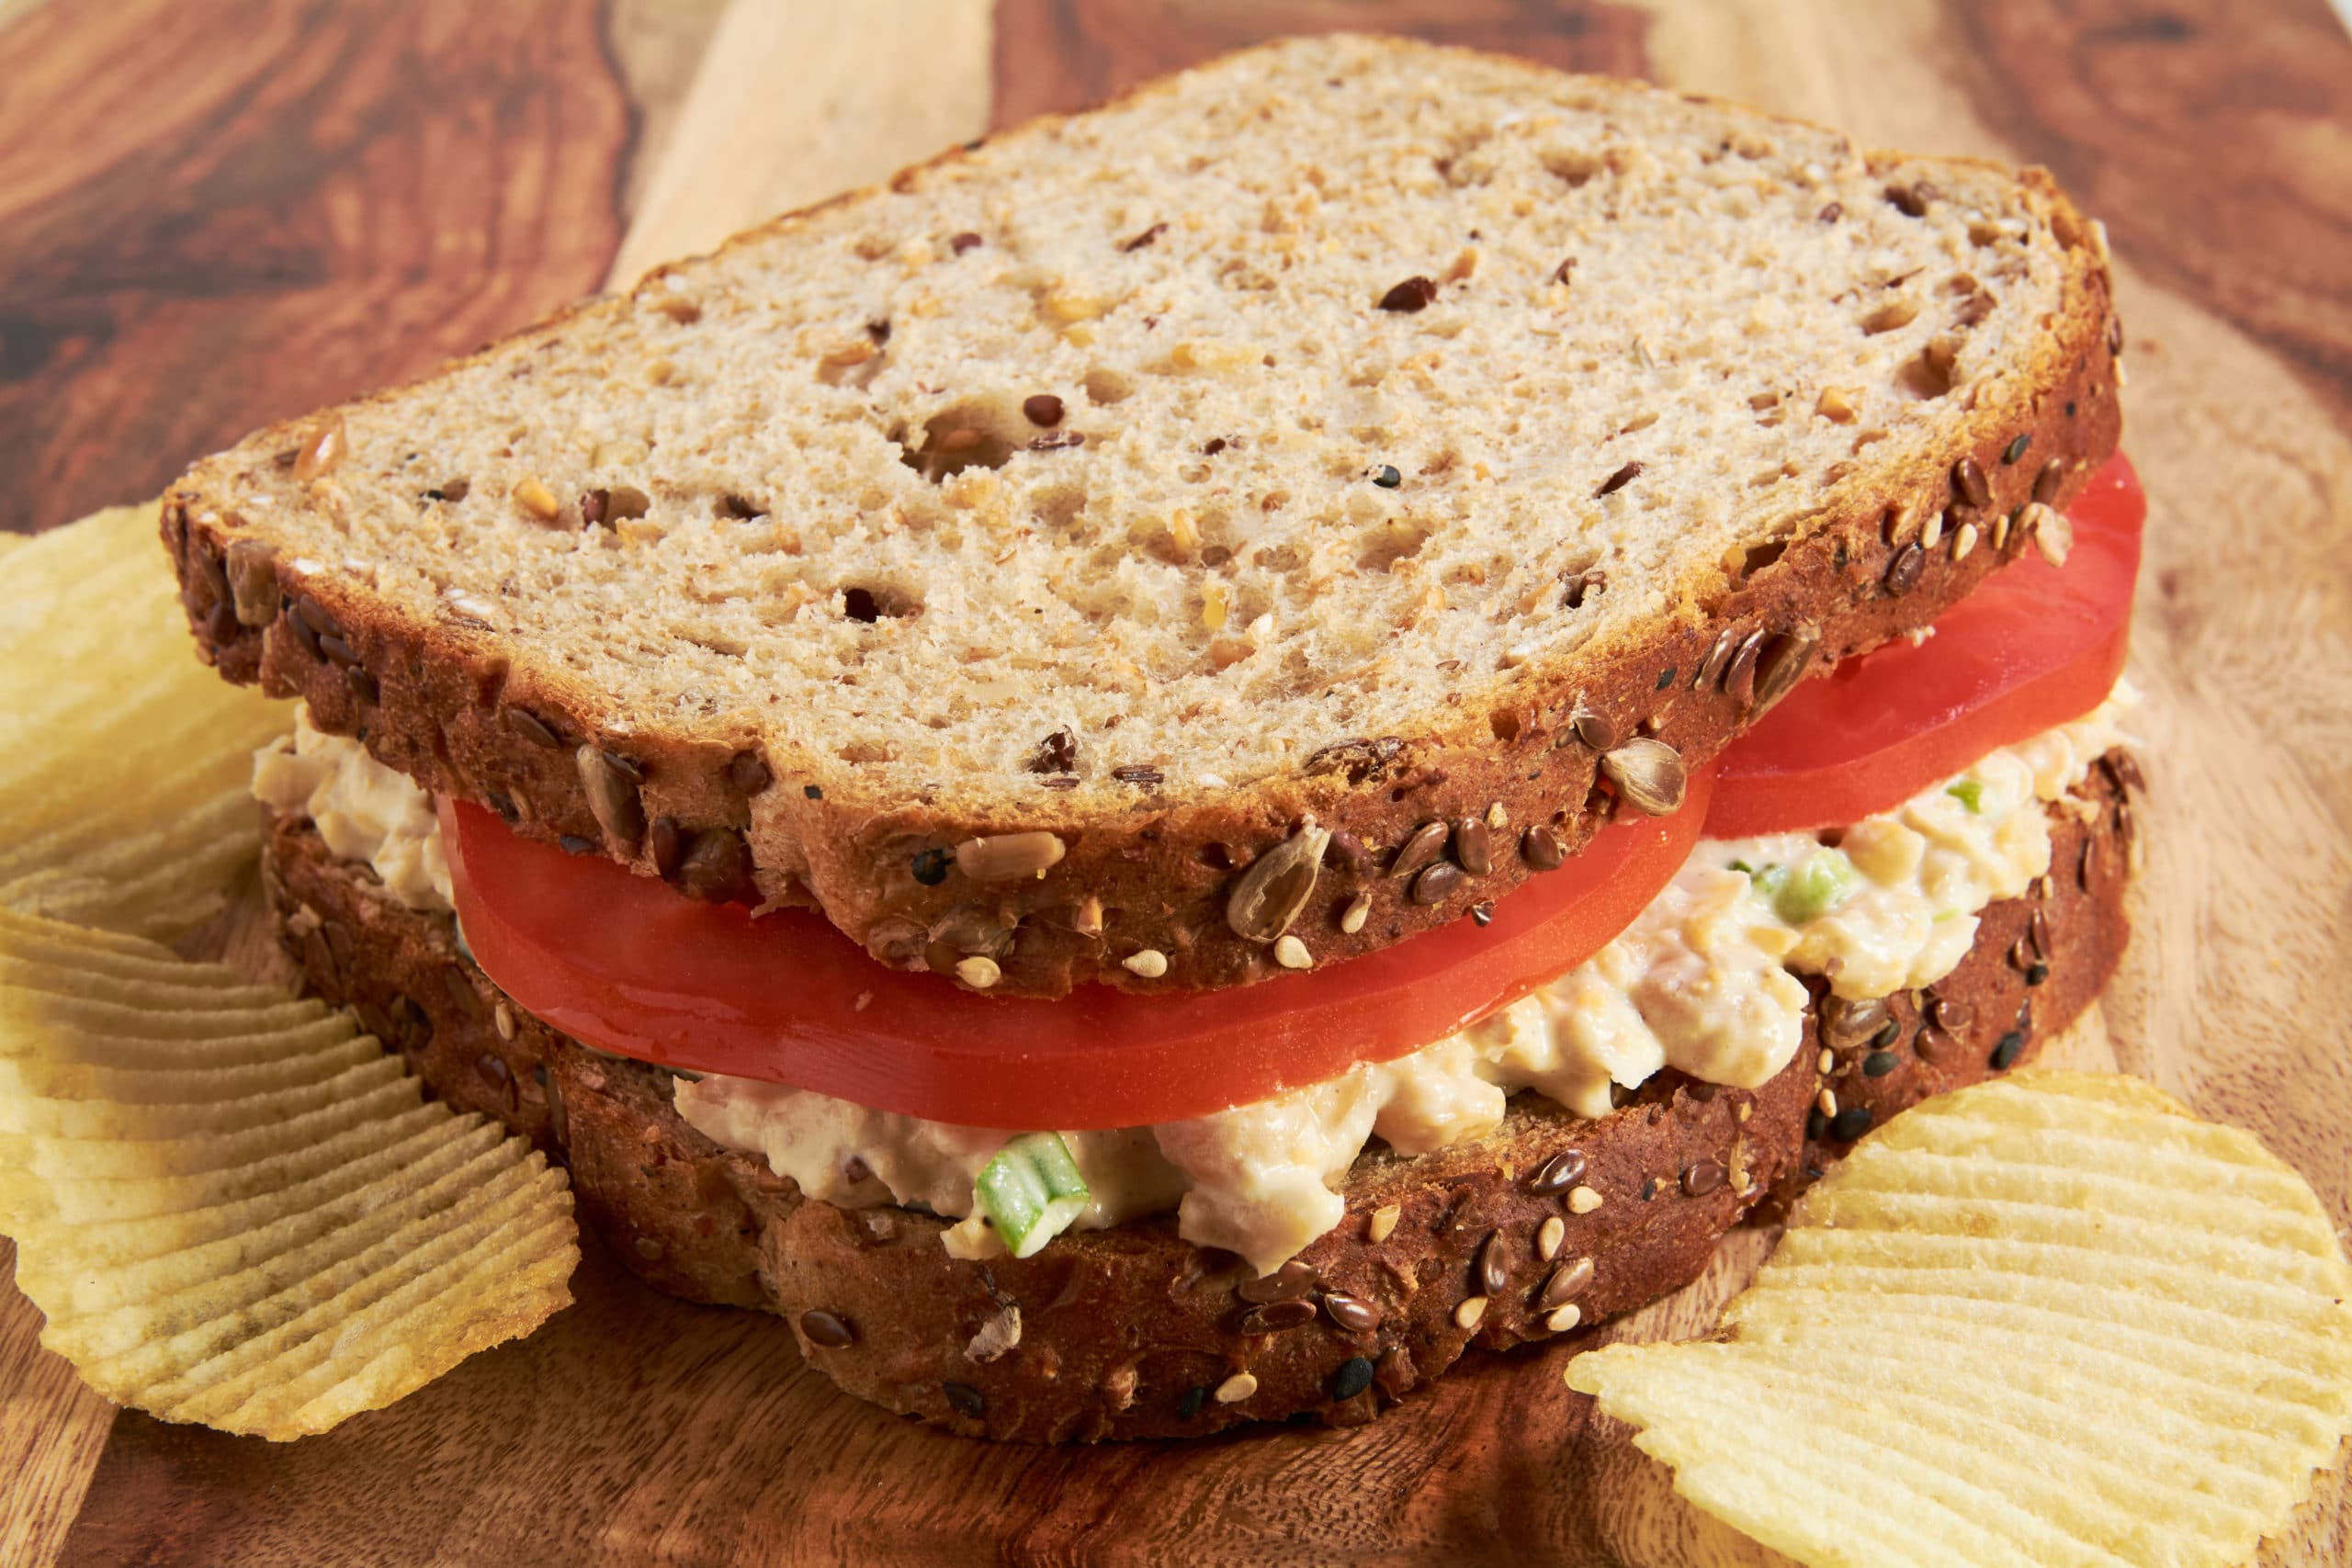 A sandwich made with whole grain bread, tomato slices and chickpea salad on a cutting board.